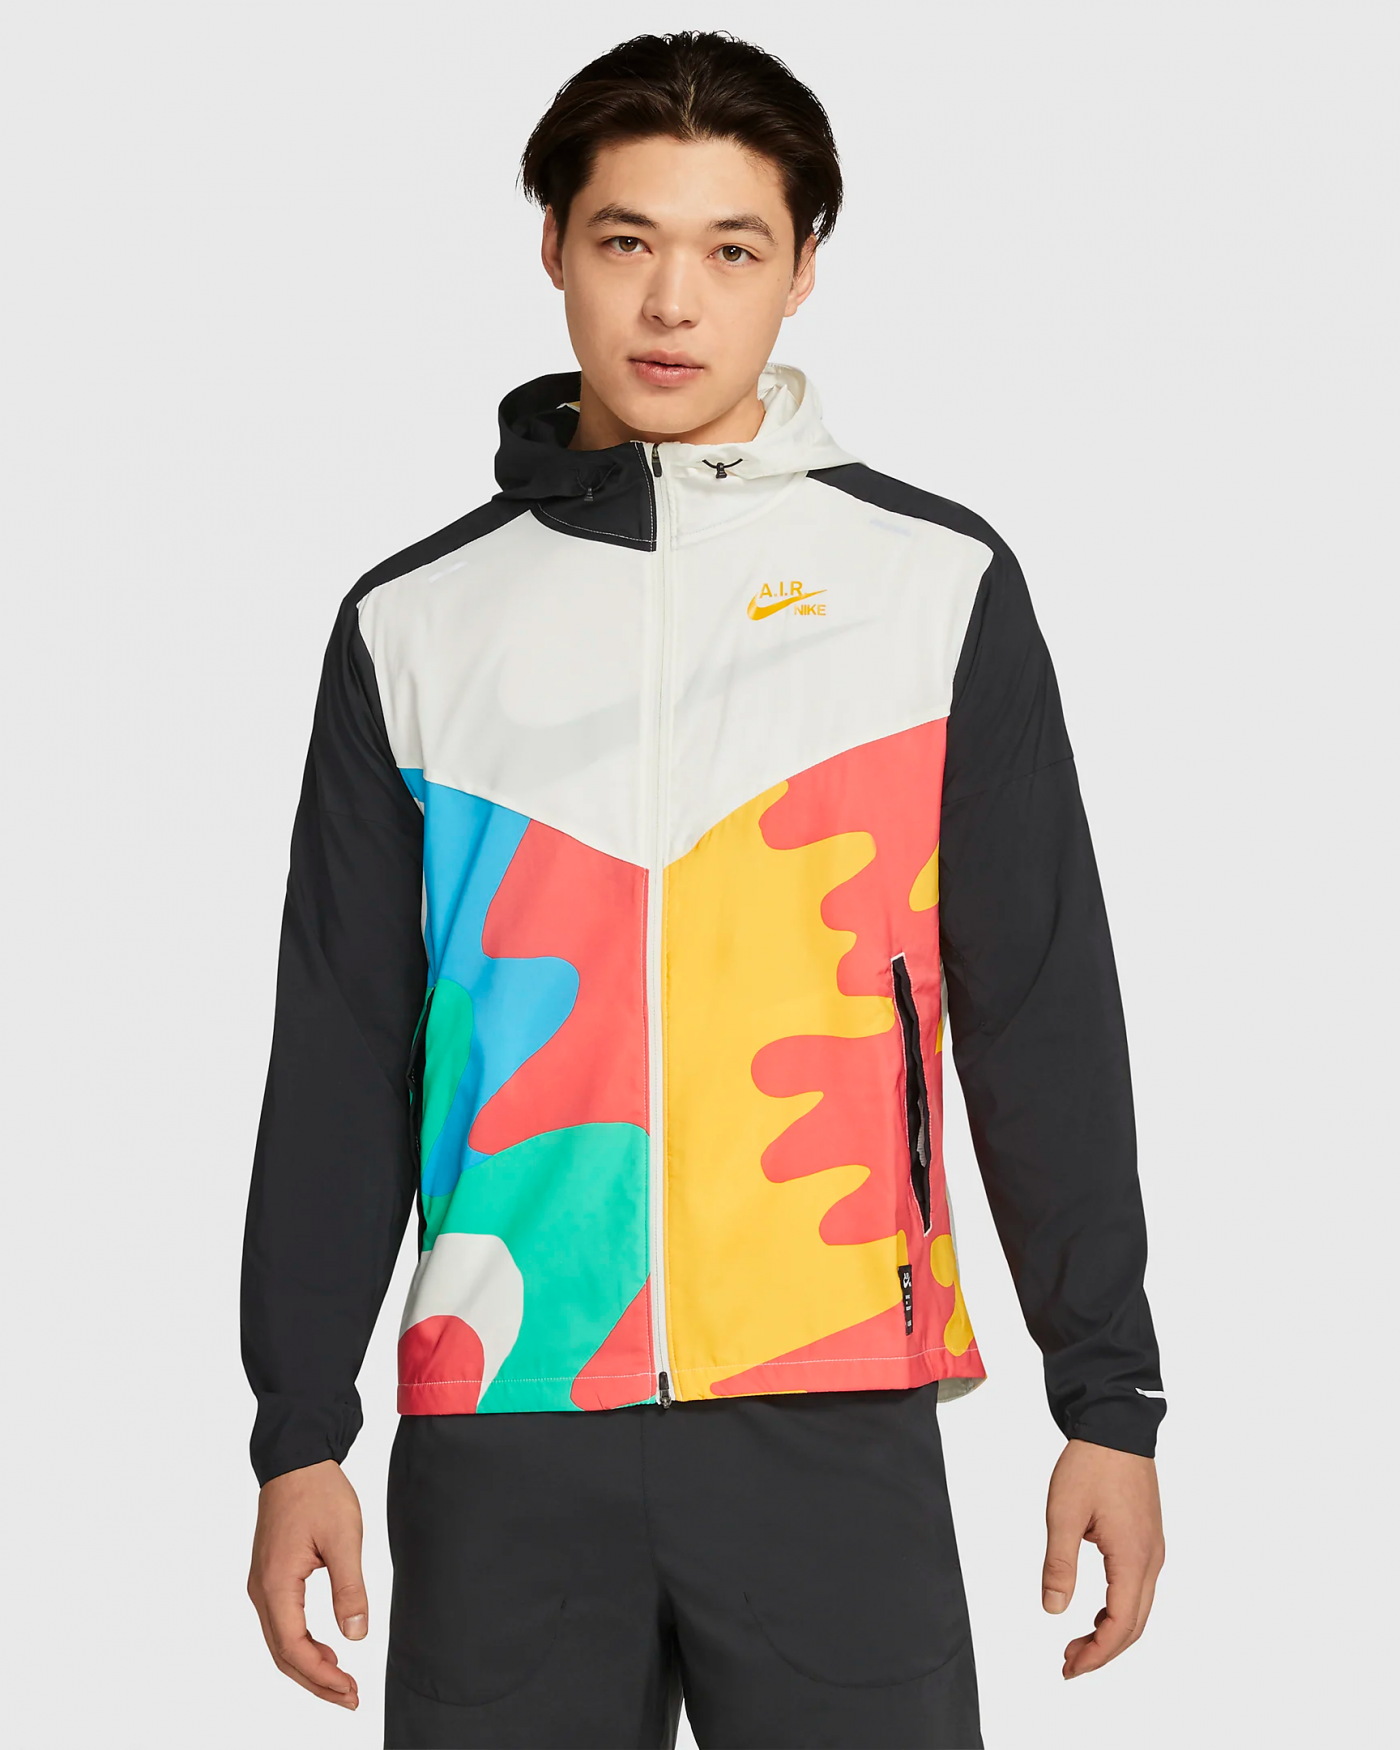 nike-air-veste-a.savage